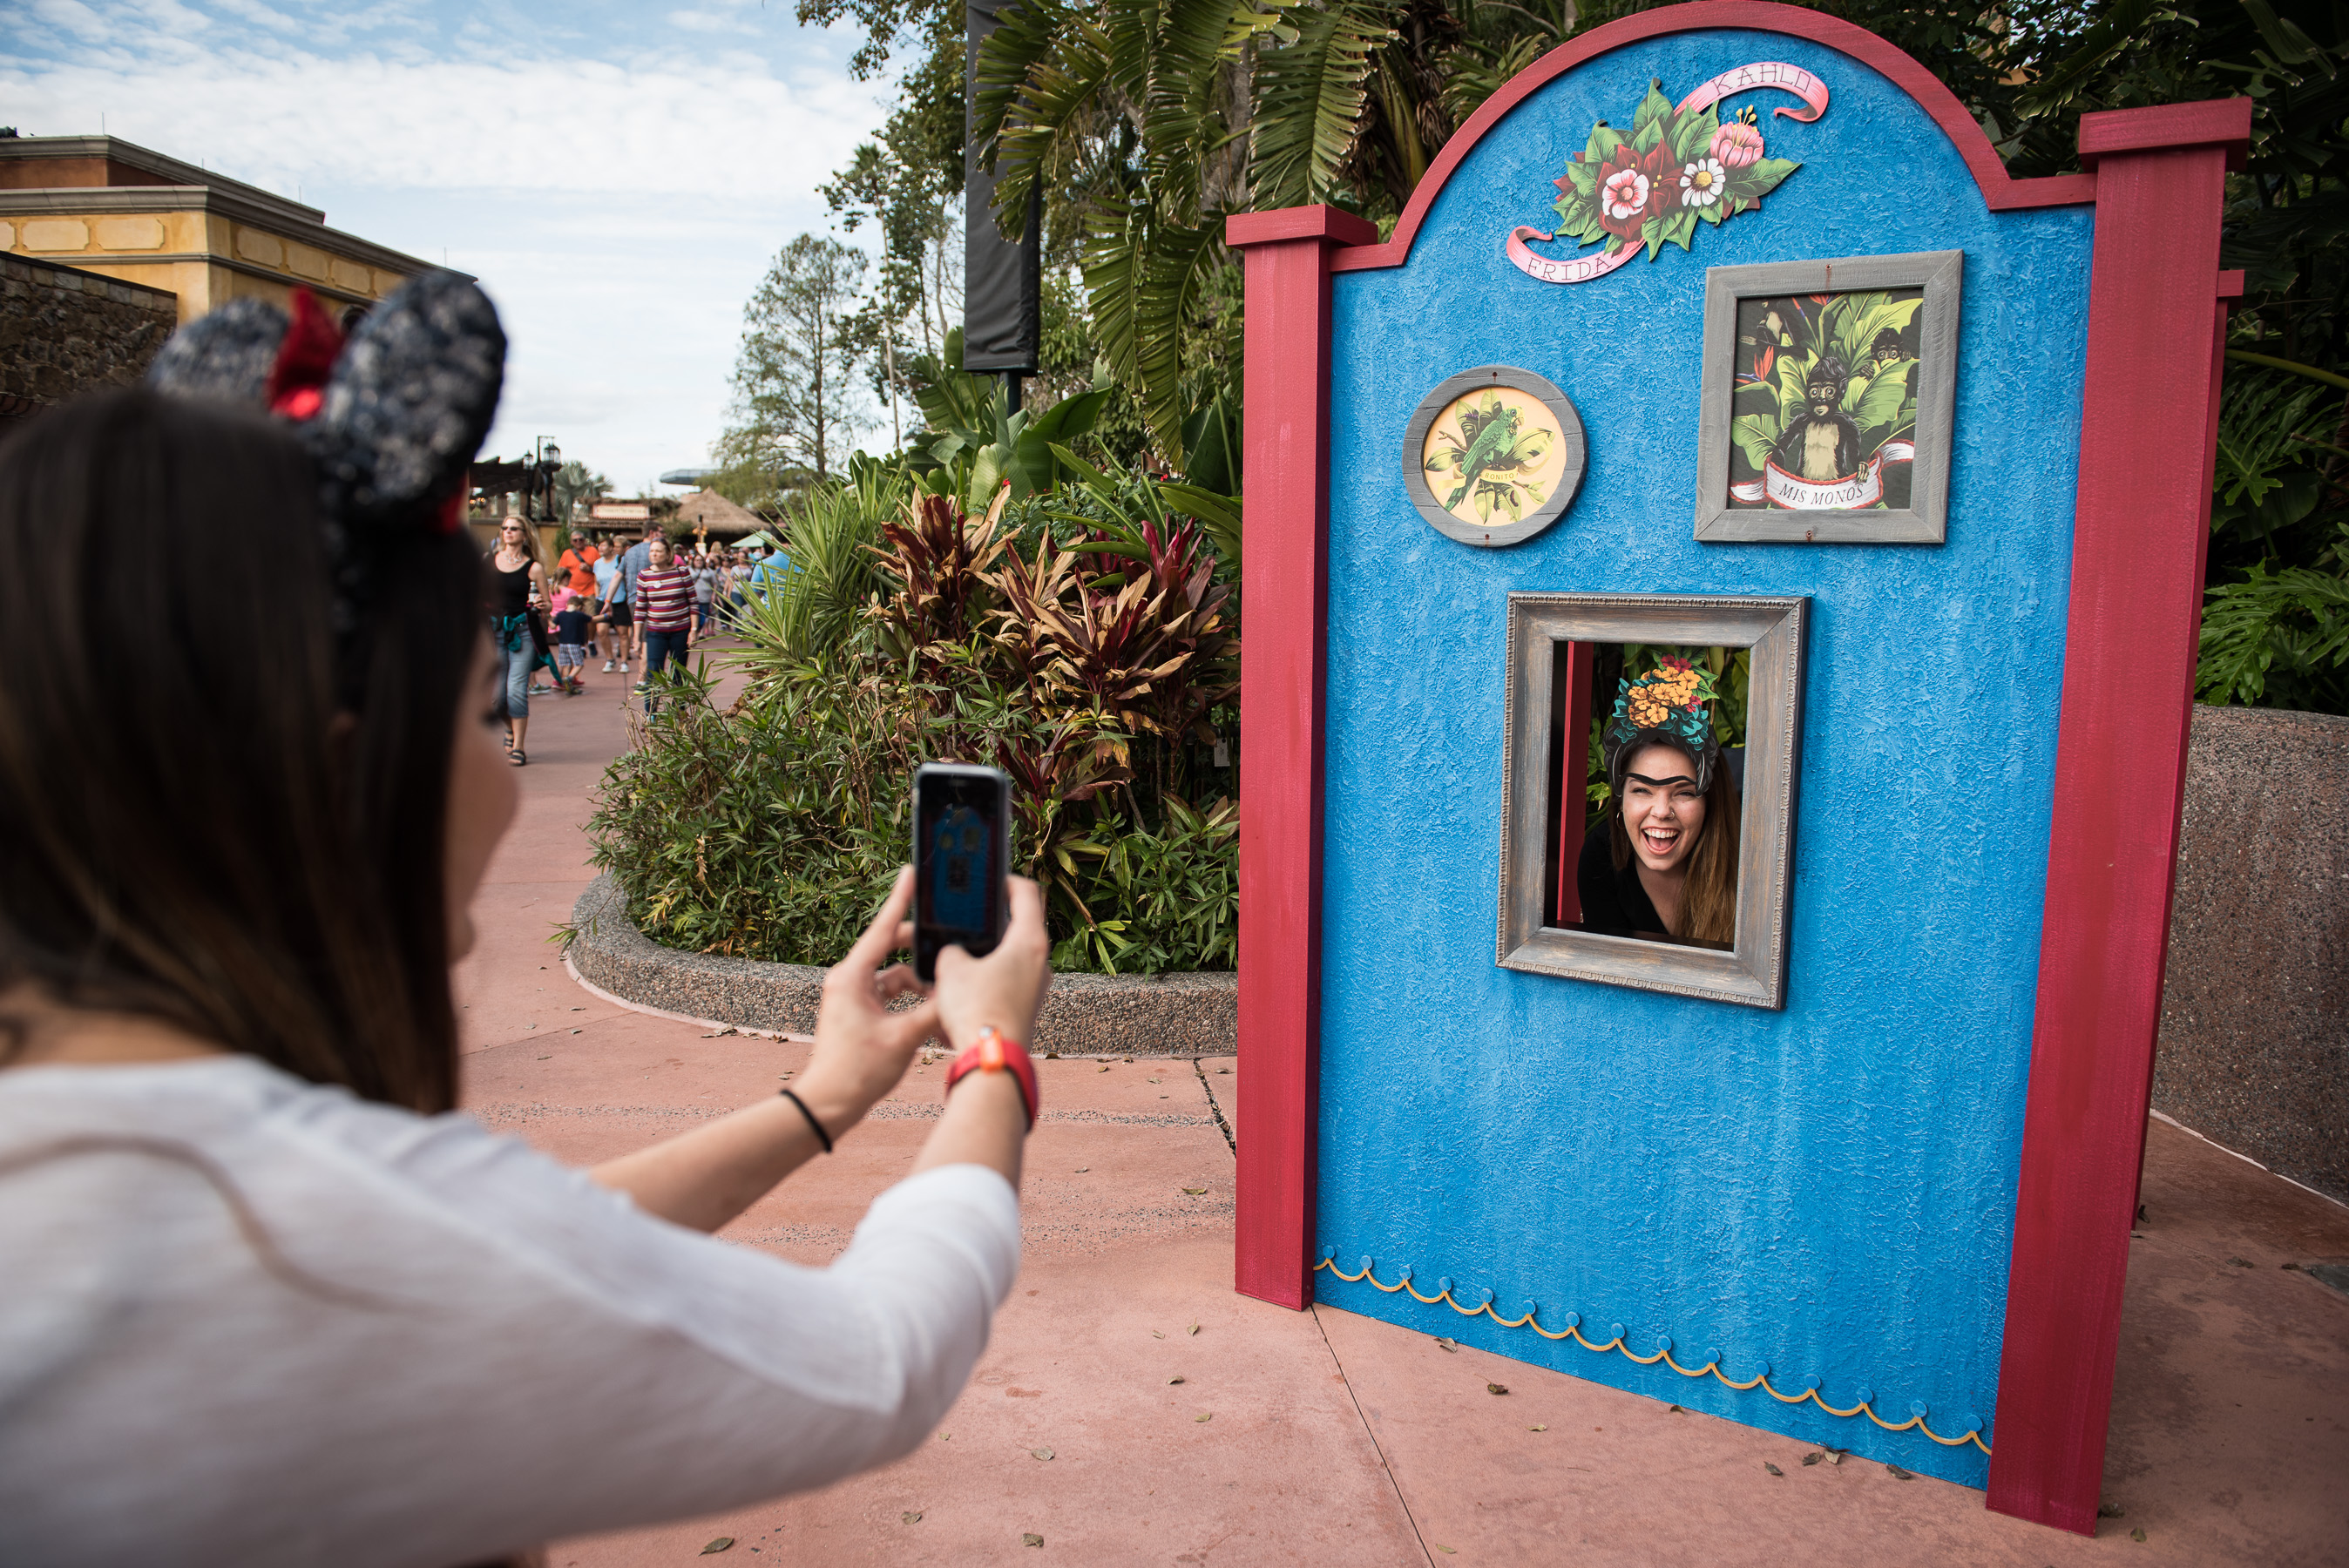 2019 Epcot International Festival of the Arts Returns on January 18th with 39 Days of Artful Fun!